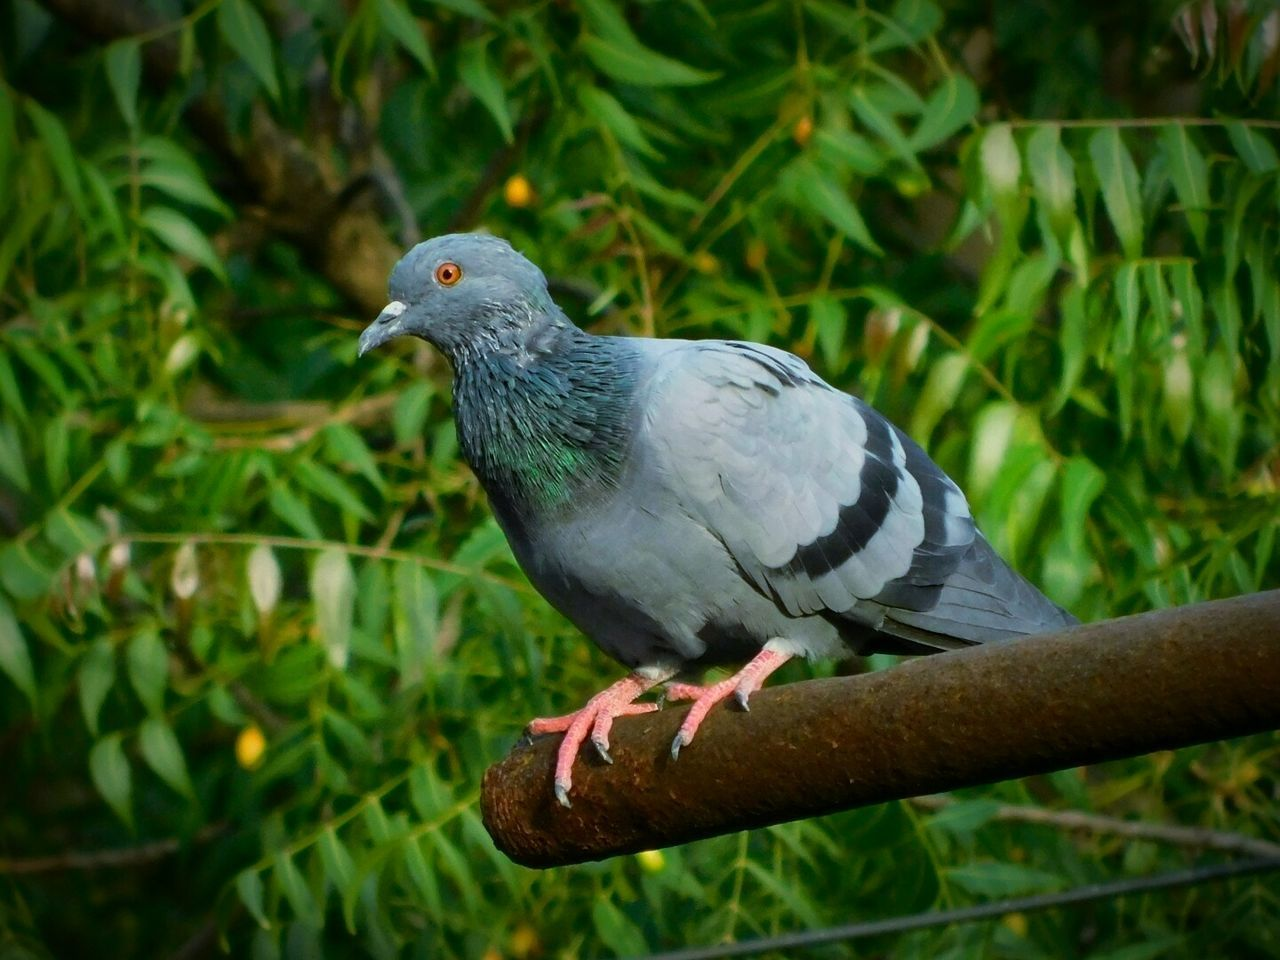 bird, animal themes, one animal, animals in the wild, perching, animal wildlife, day, focus on foreground, close-up, outdoors, no people, nature